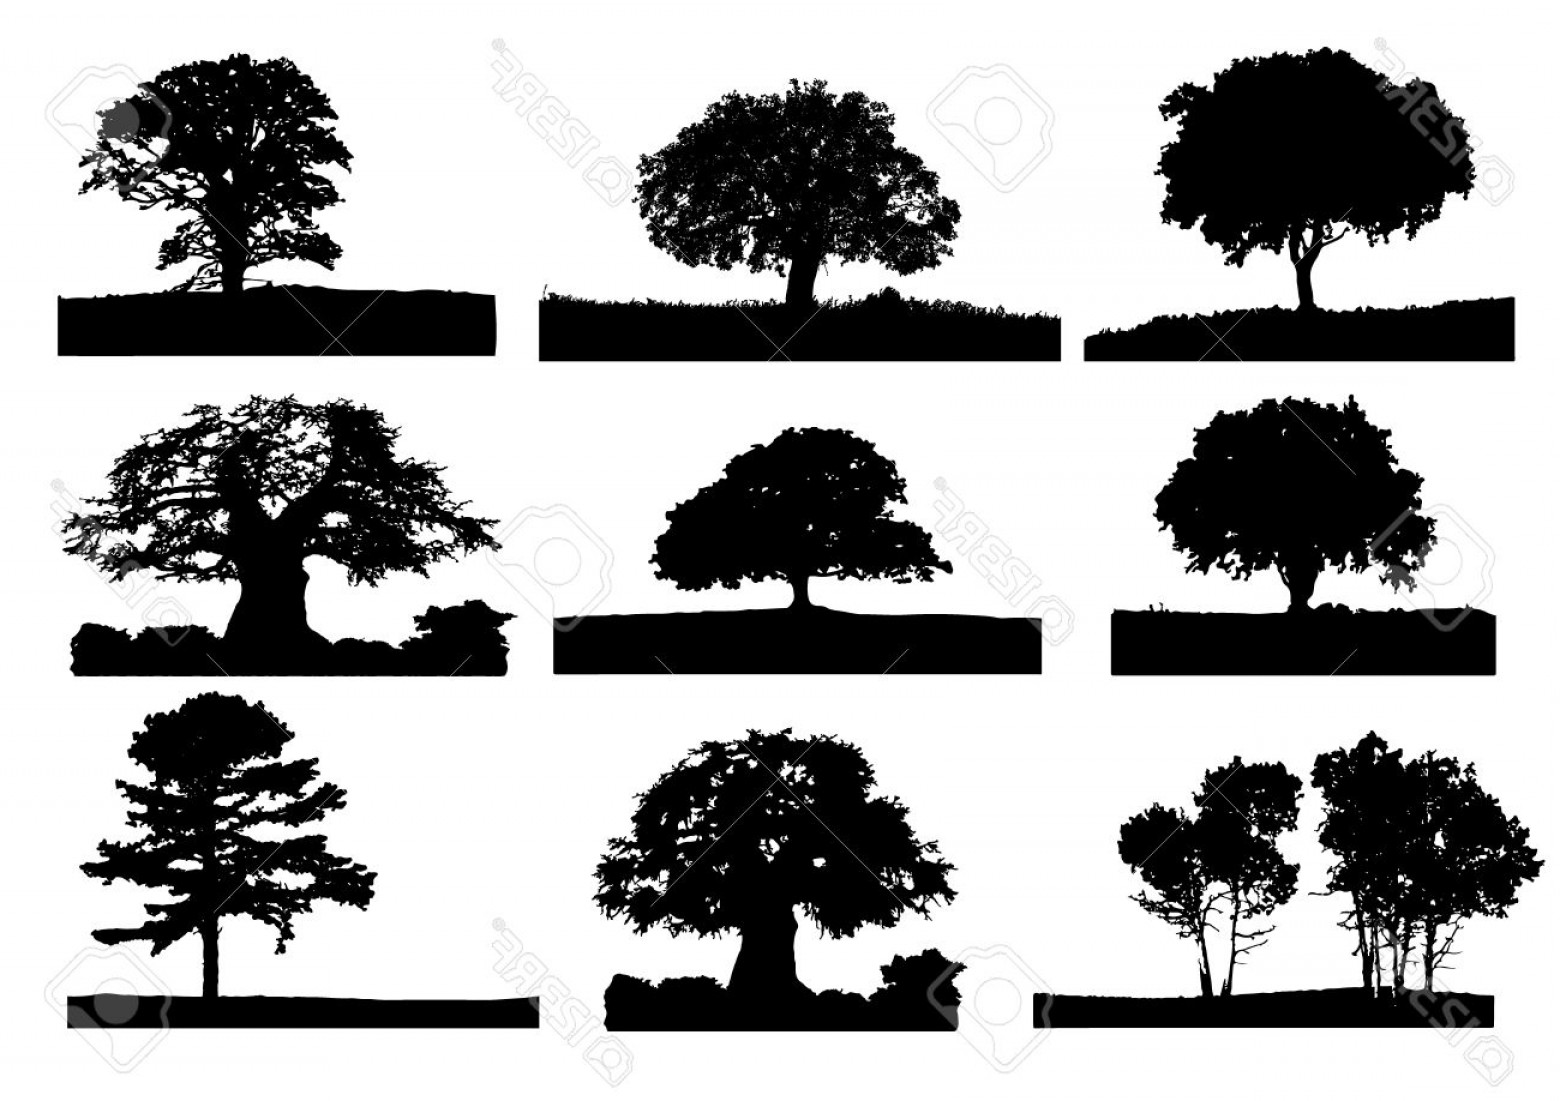 Oak Tree Silhouette Vector Graphics: Photo Black Tree Silhouette With Grass